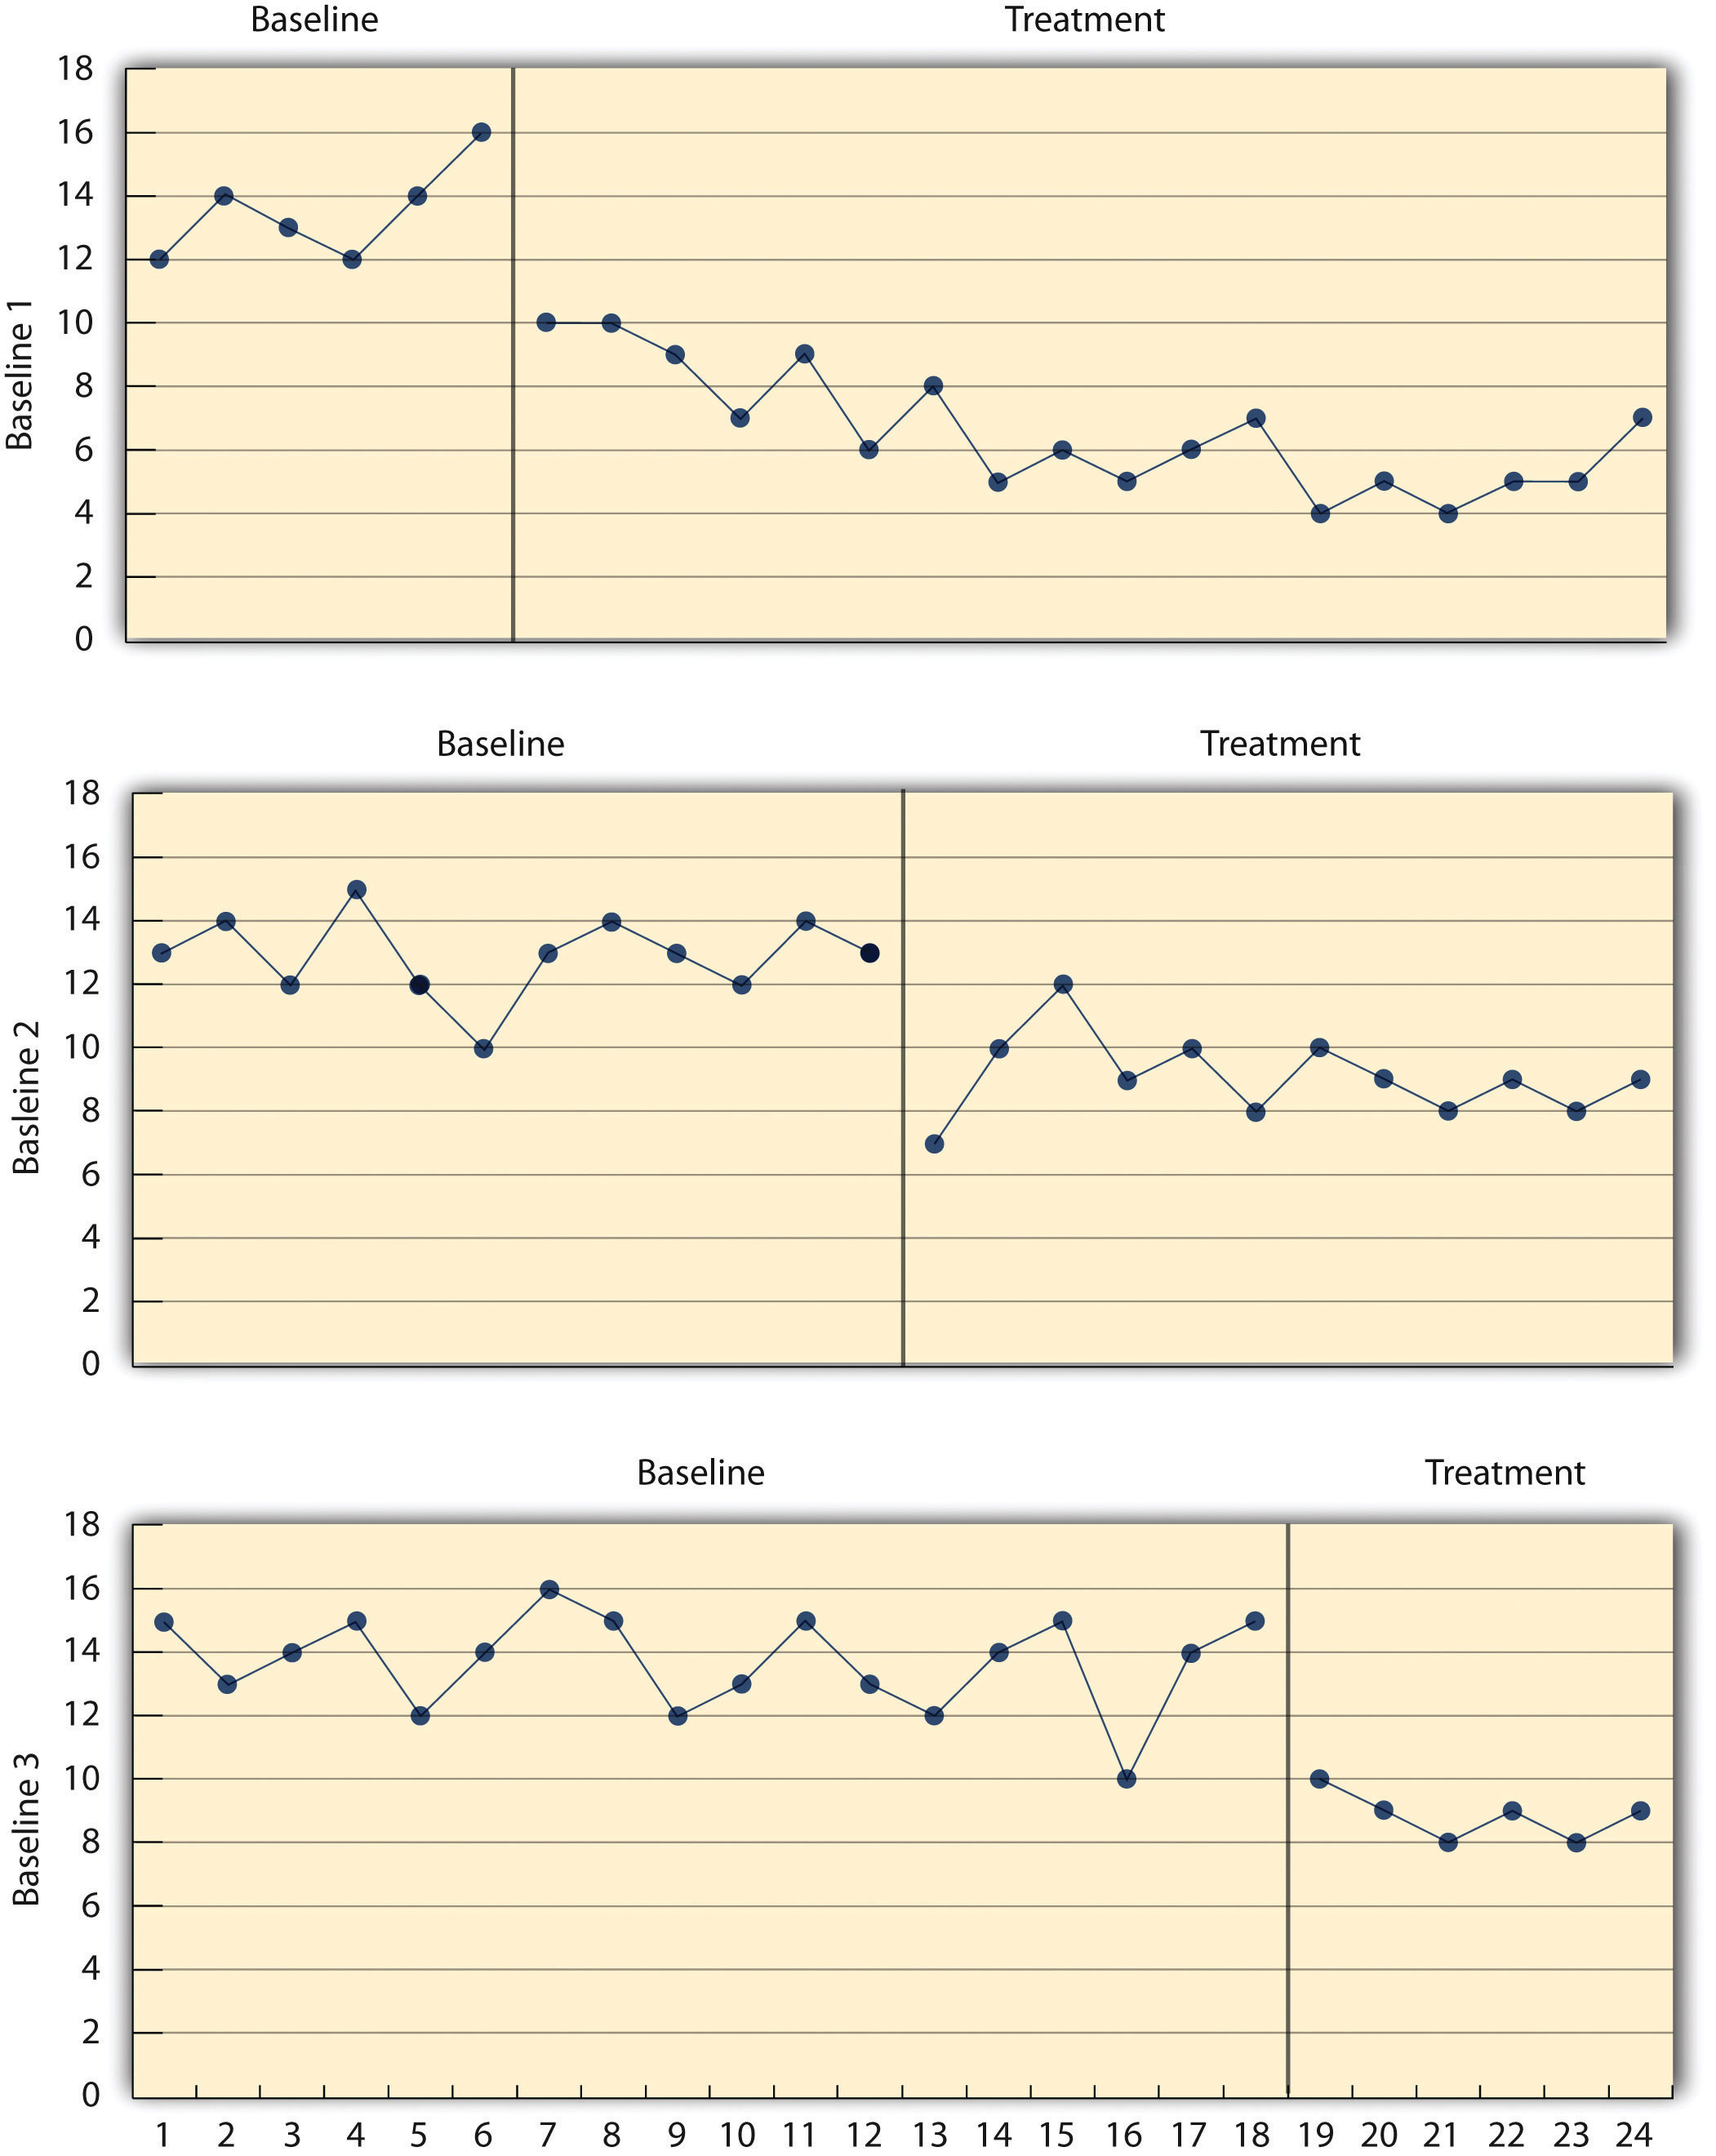 Results of a Generic Multiple-Baseline Study: The multiple baselines can be for different participants, dependent variables, or settings. The treatment is introduced at a different time on each baseline